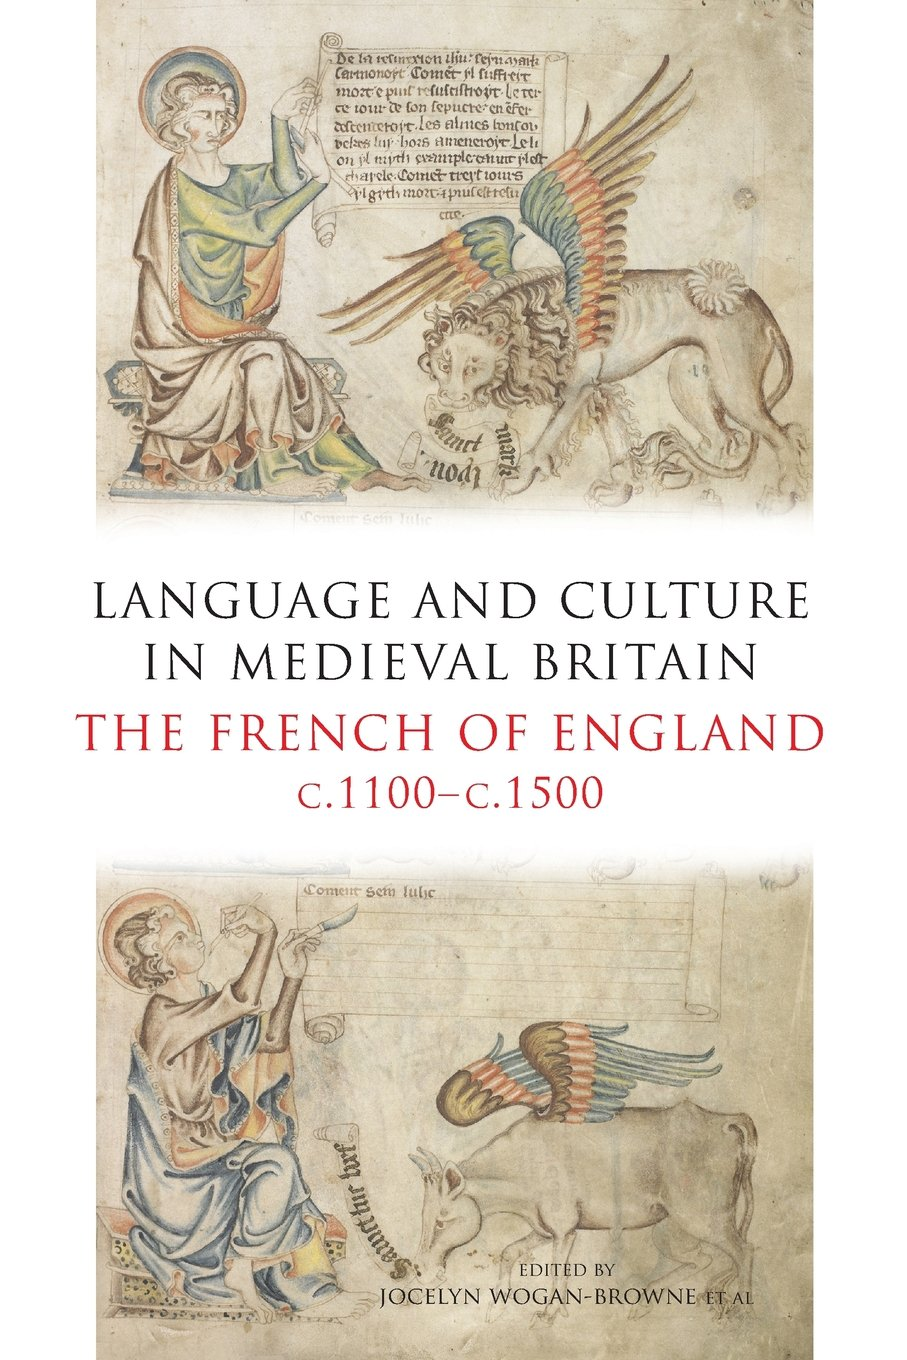 Download Language and Culture in Medieval Britain: The French of England, c.1100-c.1500 PDF